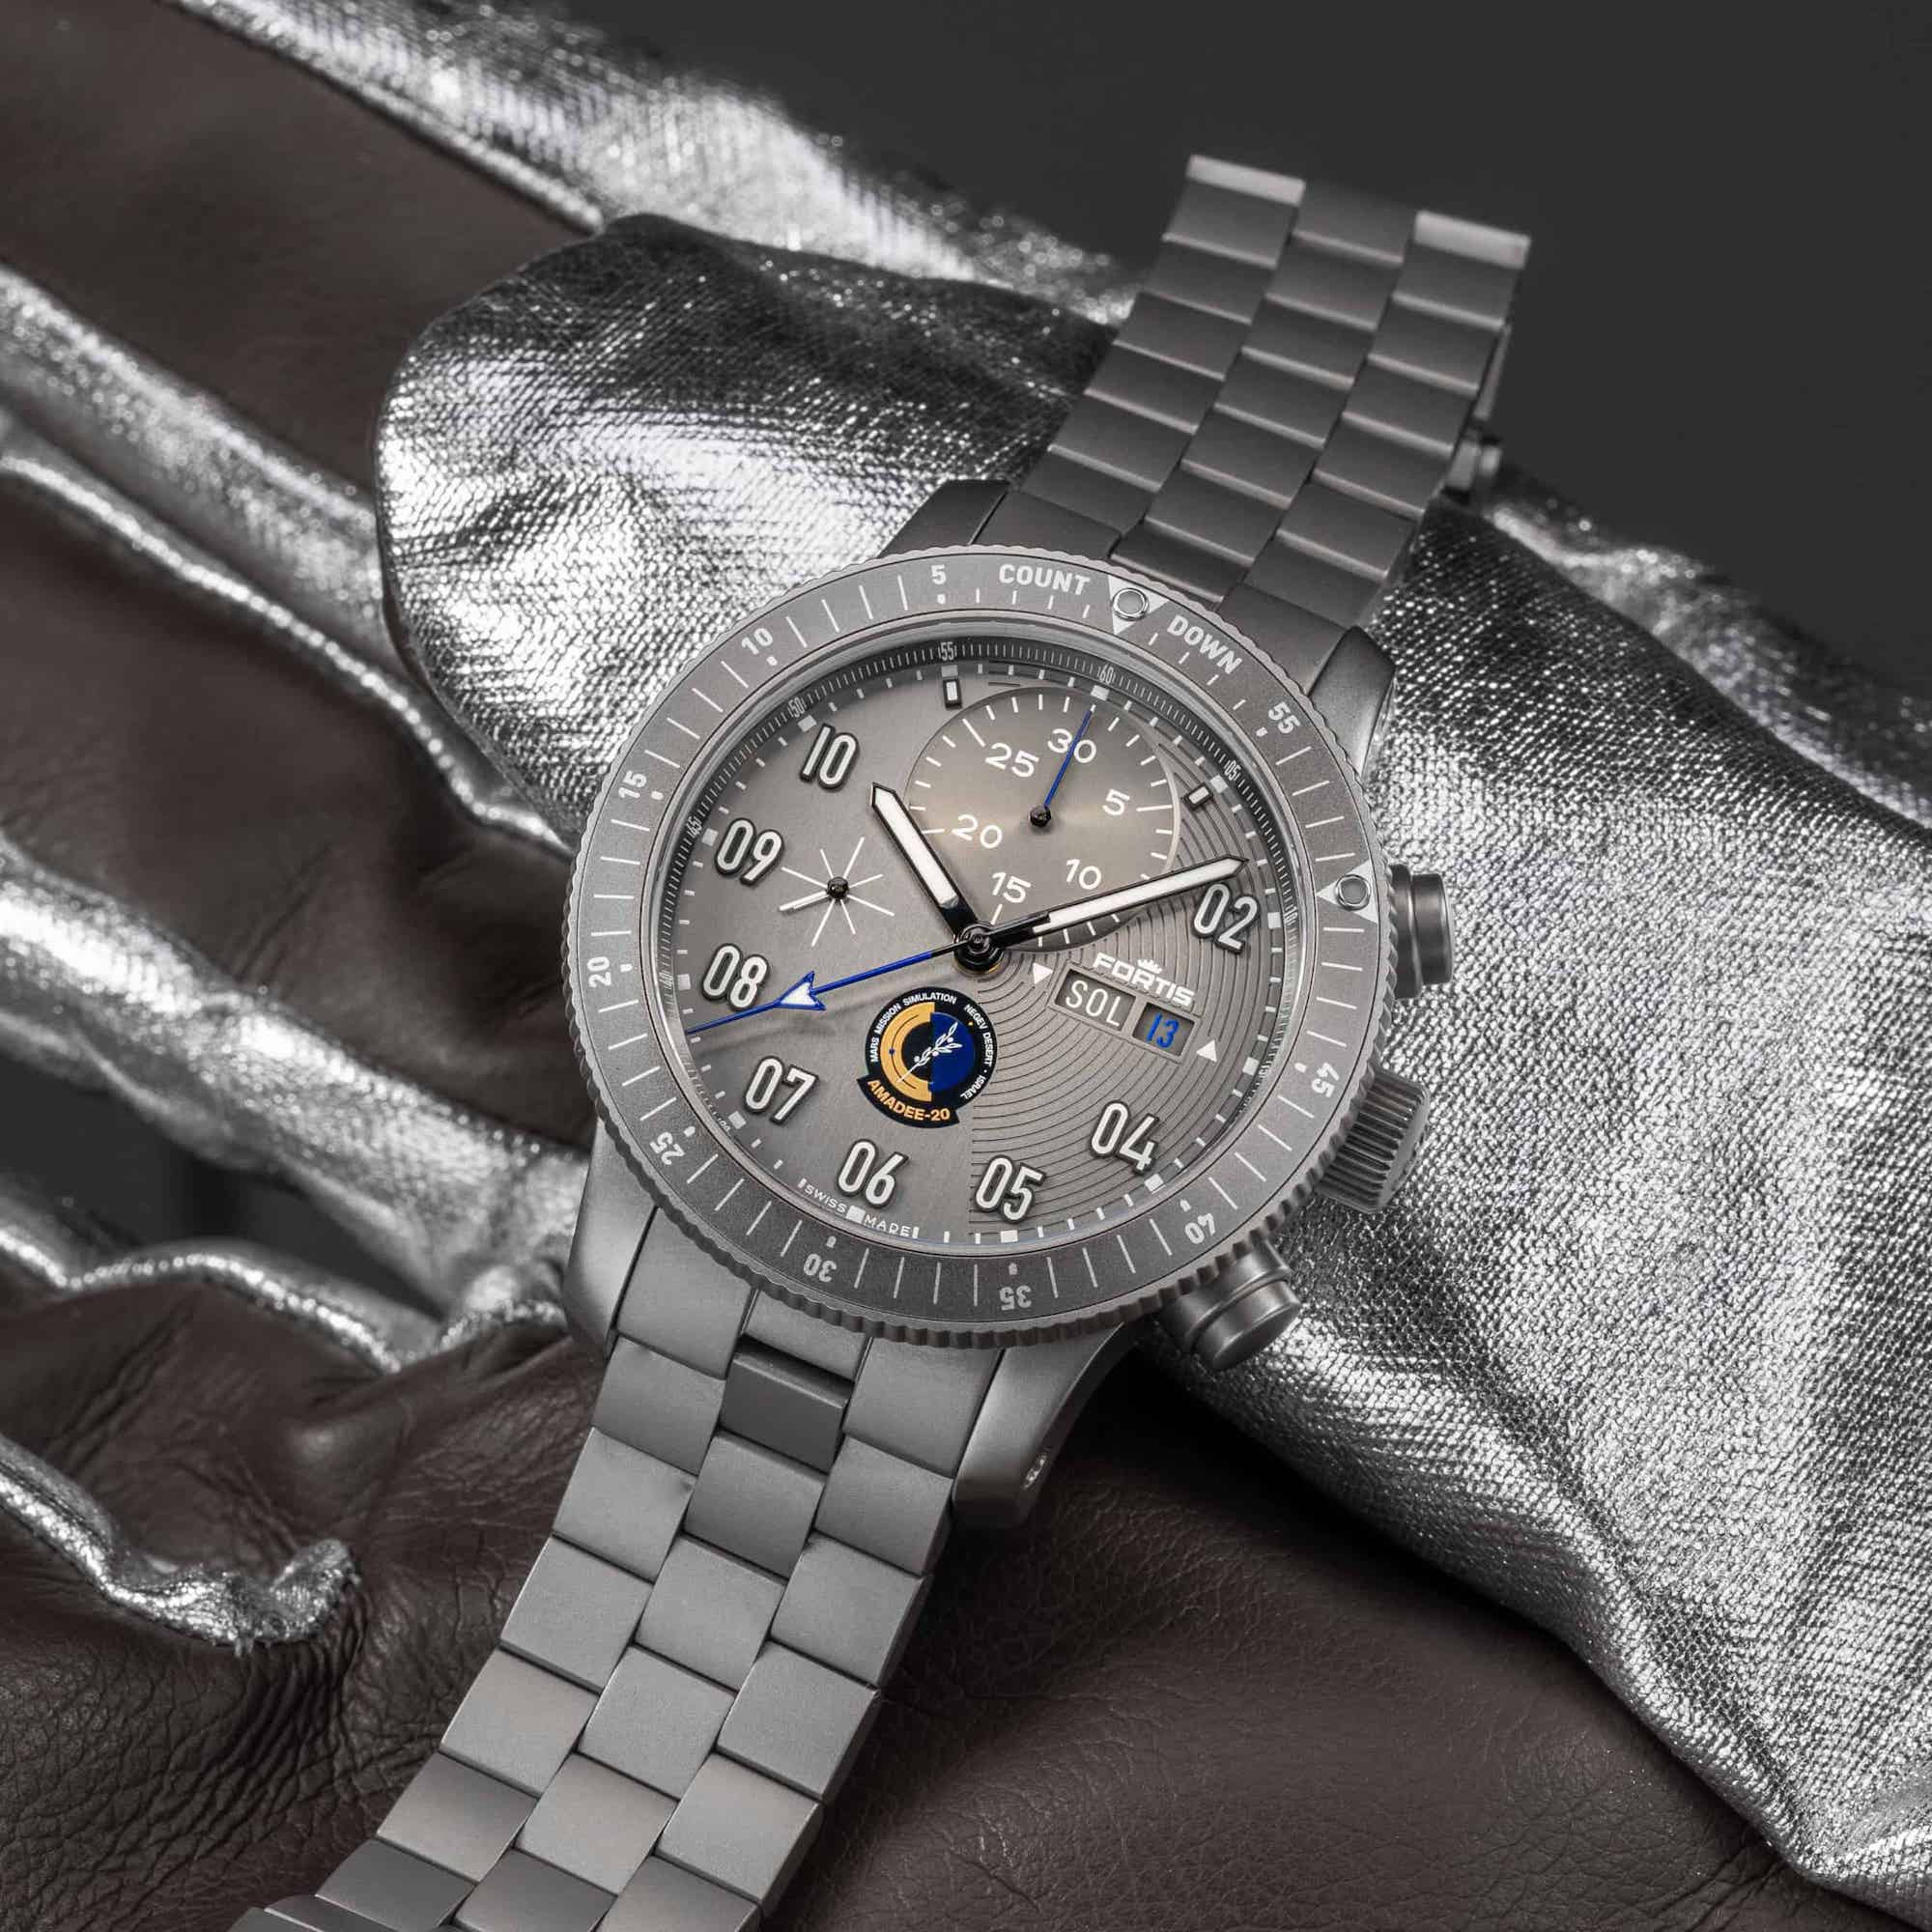 Fortis Official Cosmonauts Chronograph AMADEE-20 Lifestyle